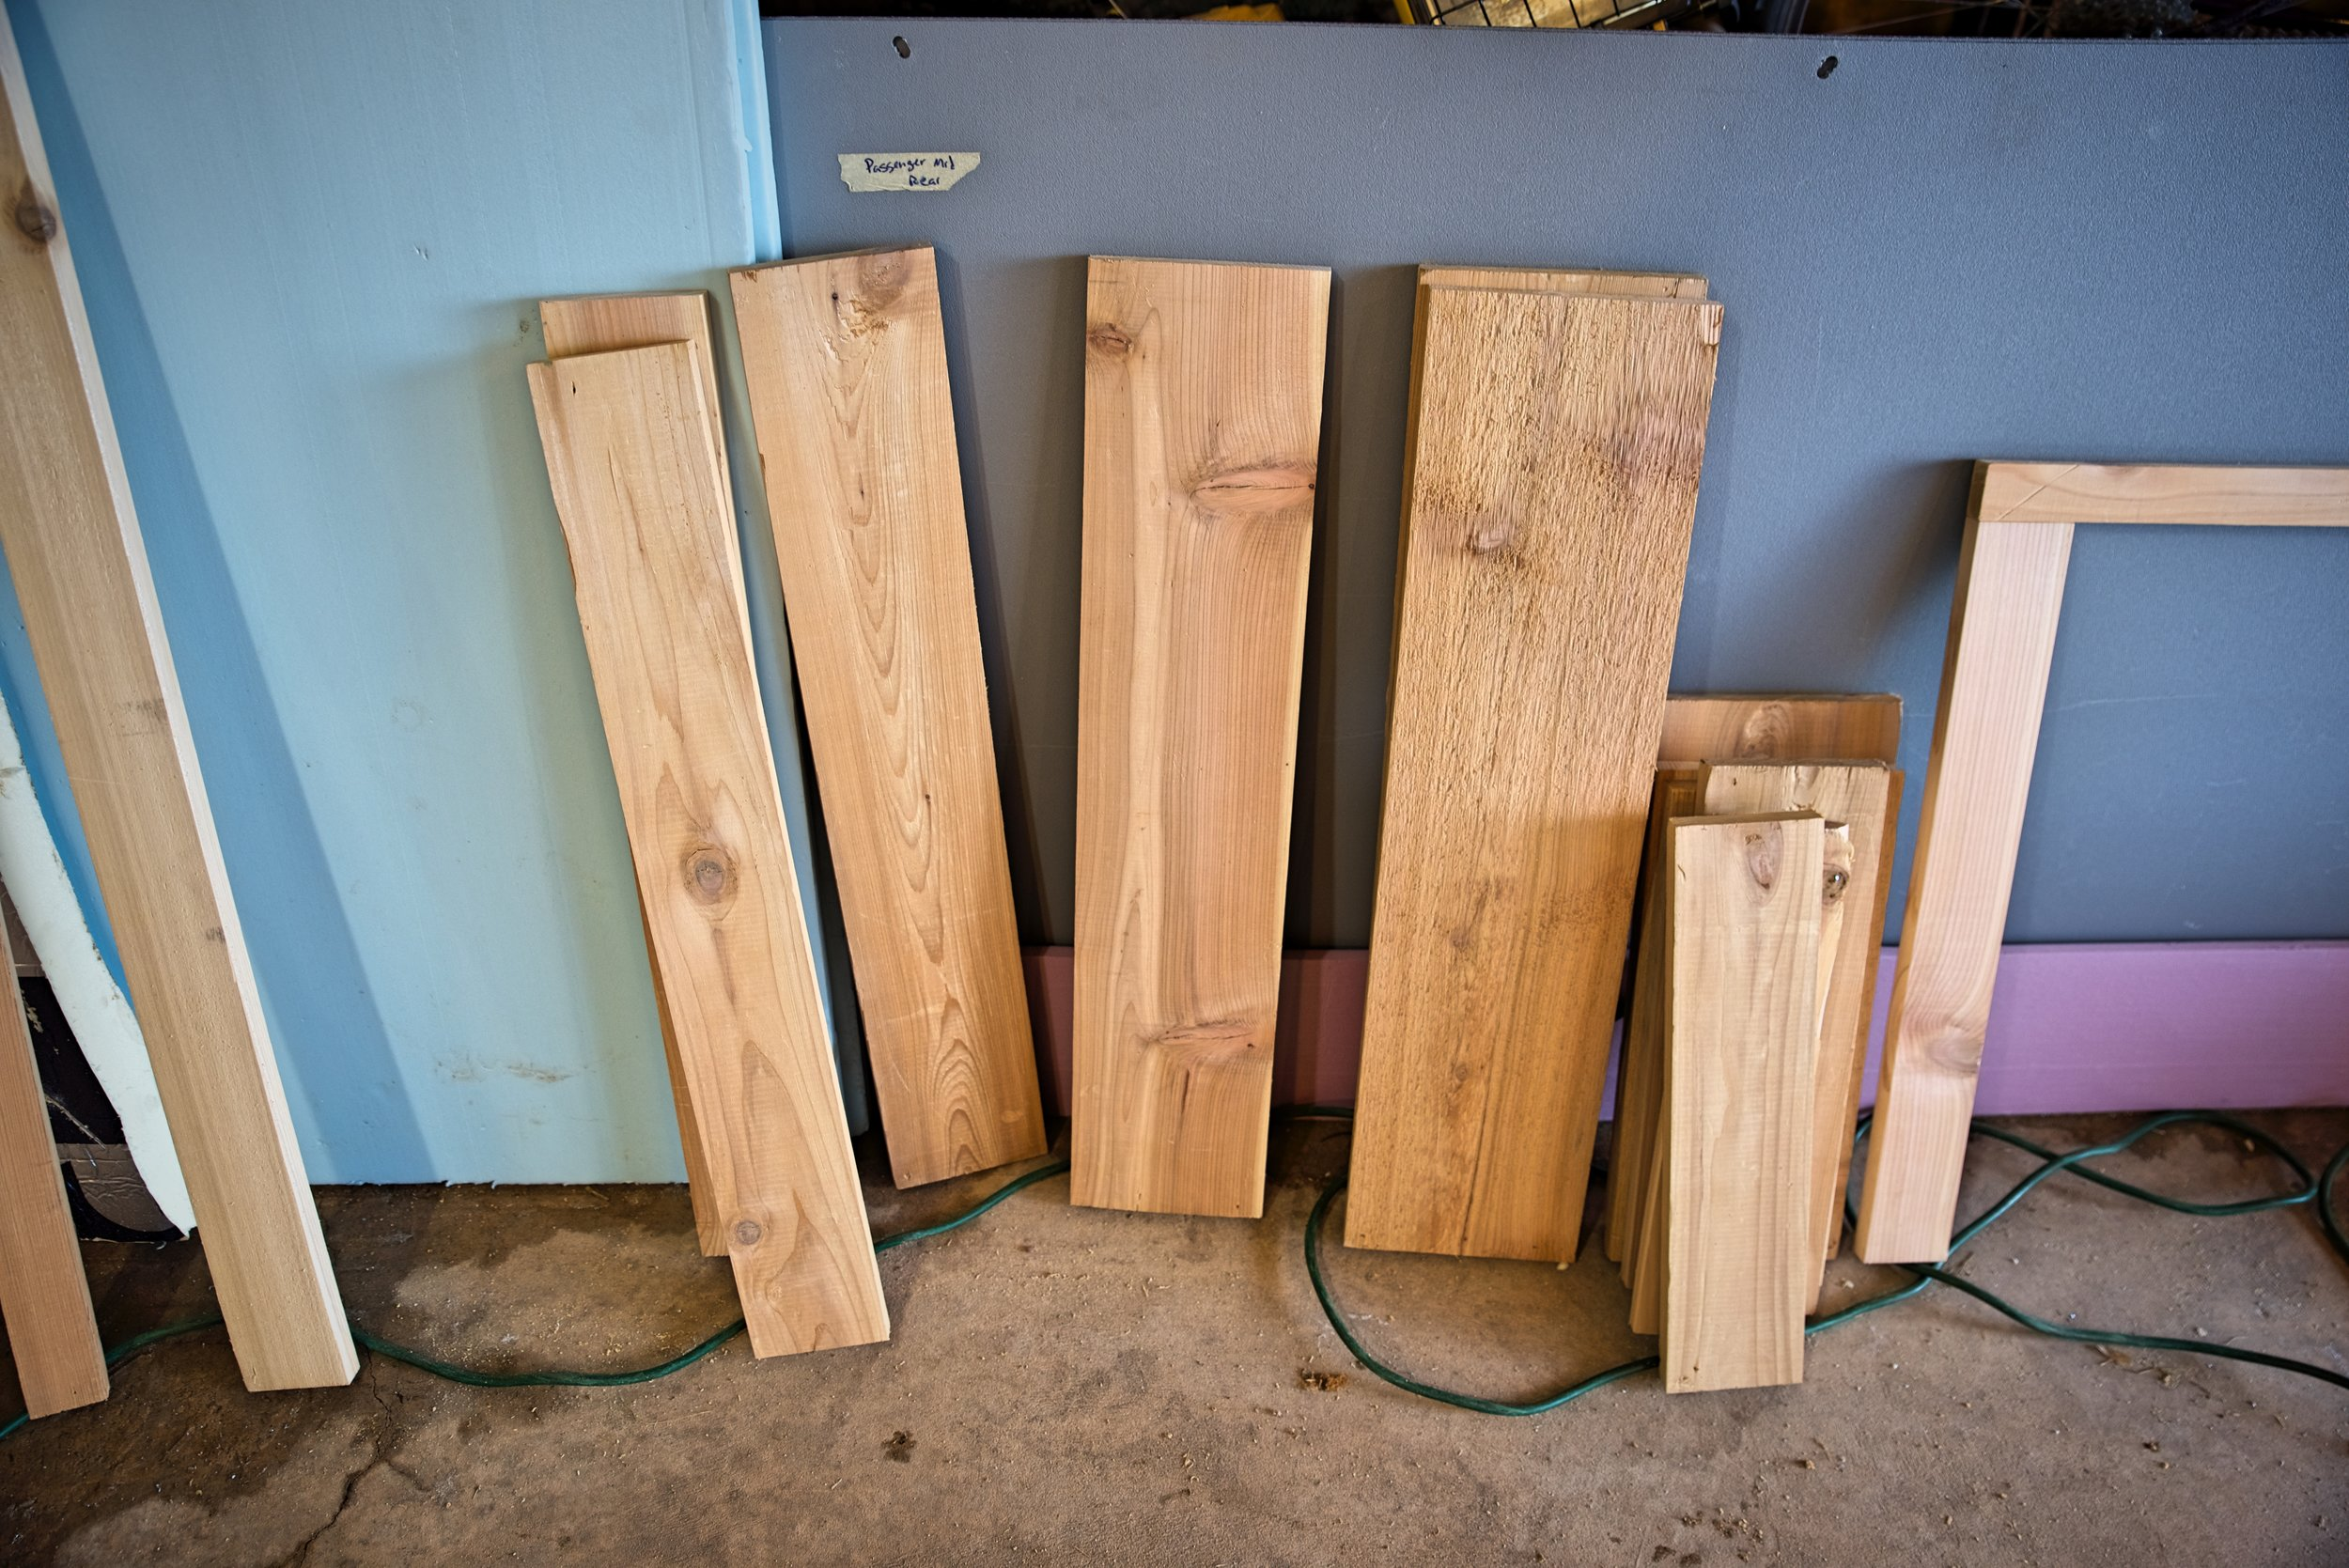 Here all the pieces of the cabinet doors ready to be joined together.